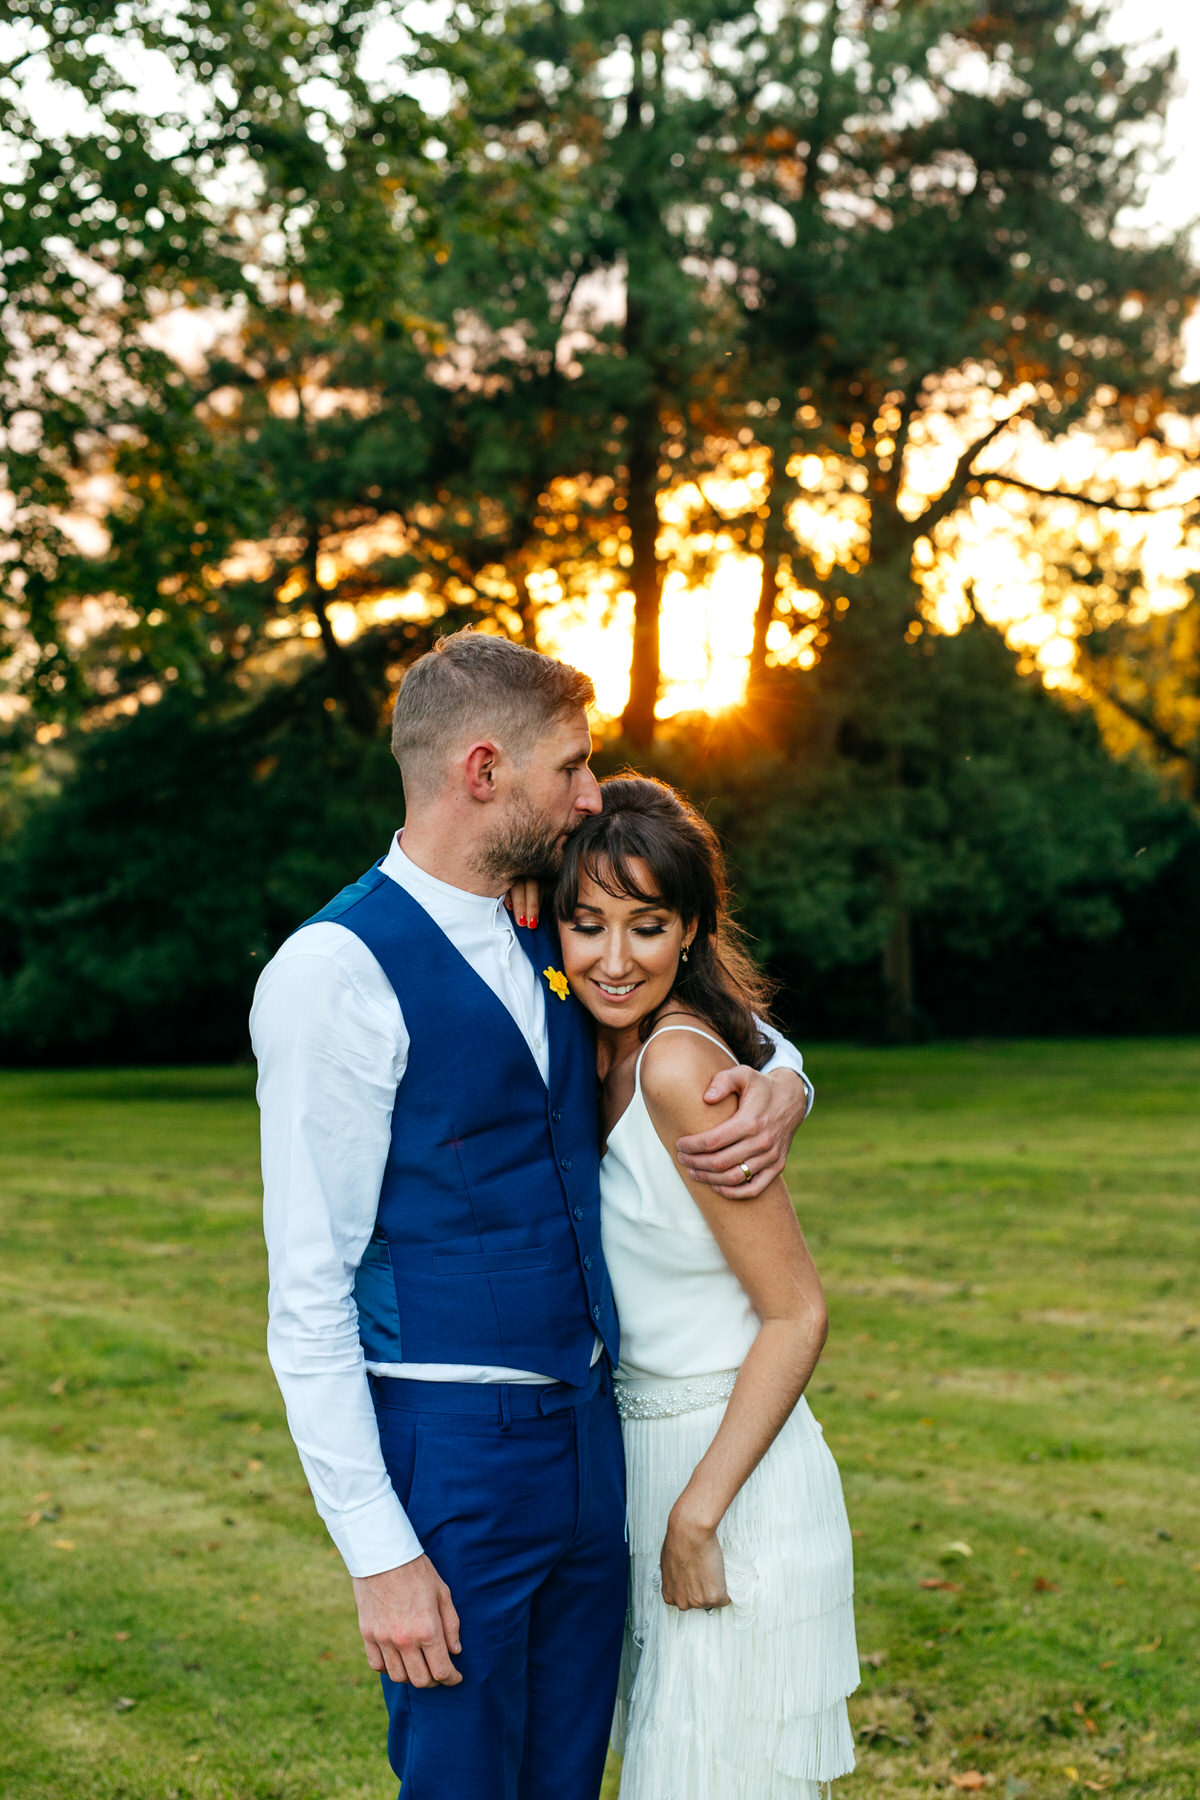 Groom kisses bride on the head during golden hour portraits